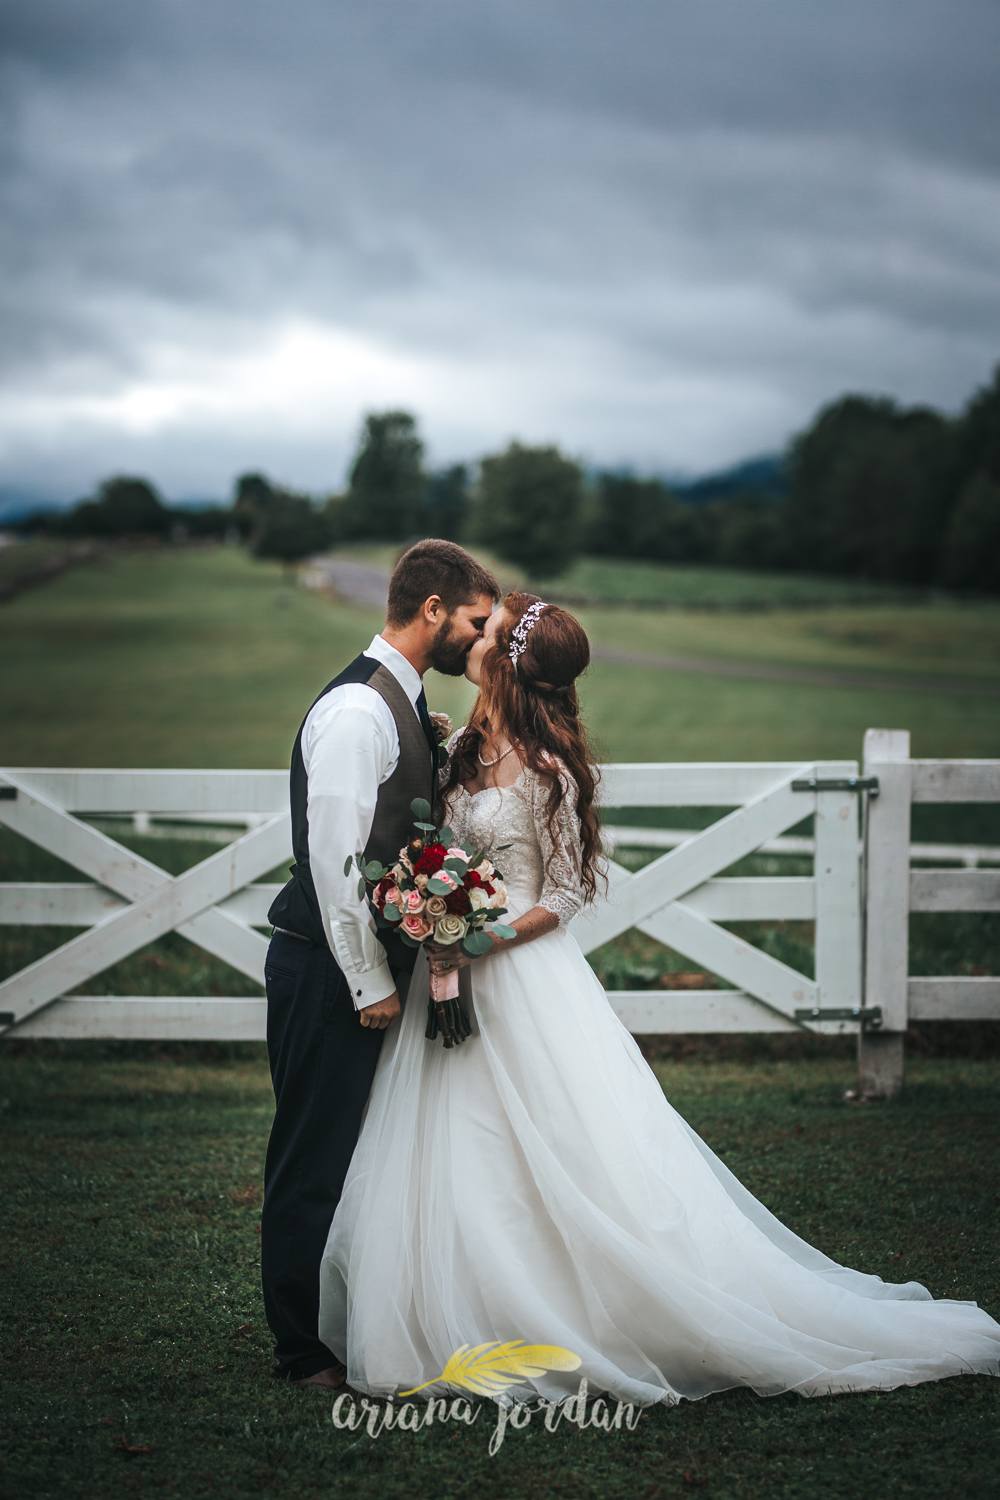 186 - Ariana Jordan - Kentucky Wedding Photographer - Landon & Tabitha_.jpg